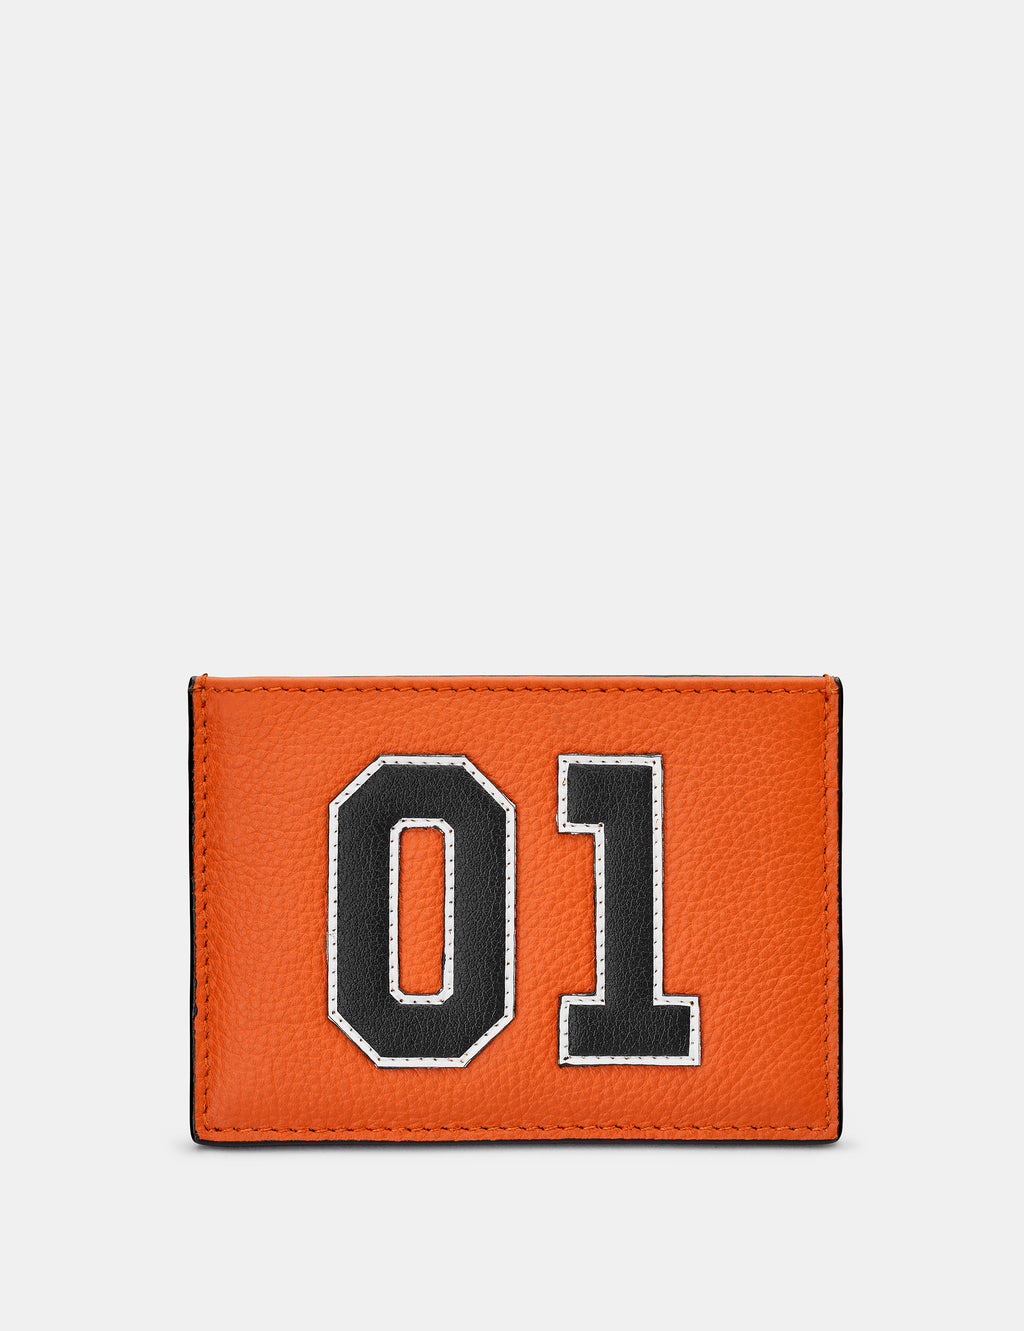 Car Livery No. 01 Orange and Black Leather Card Holder